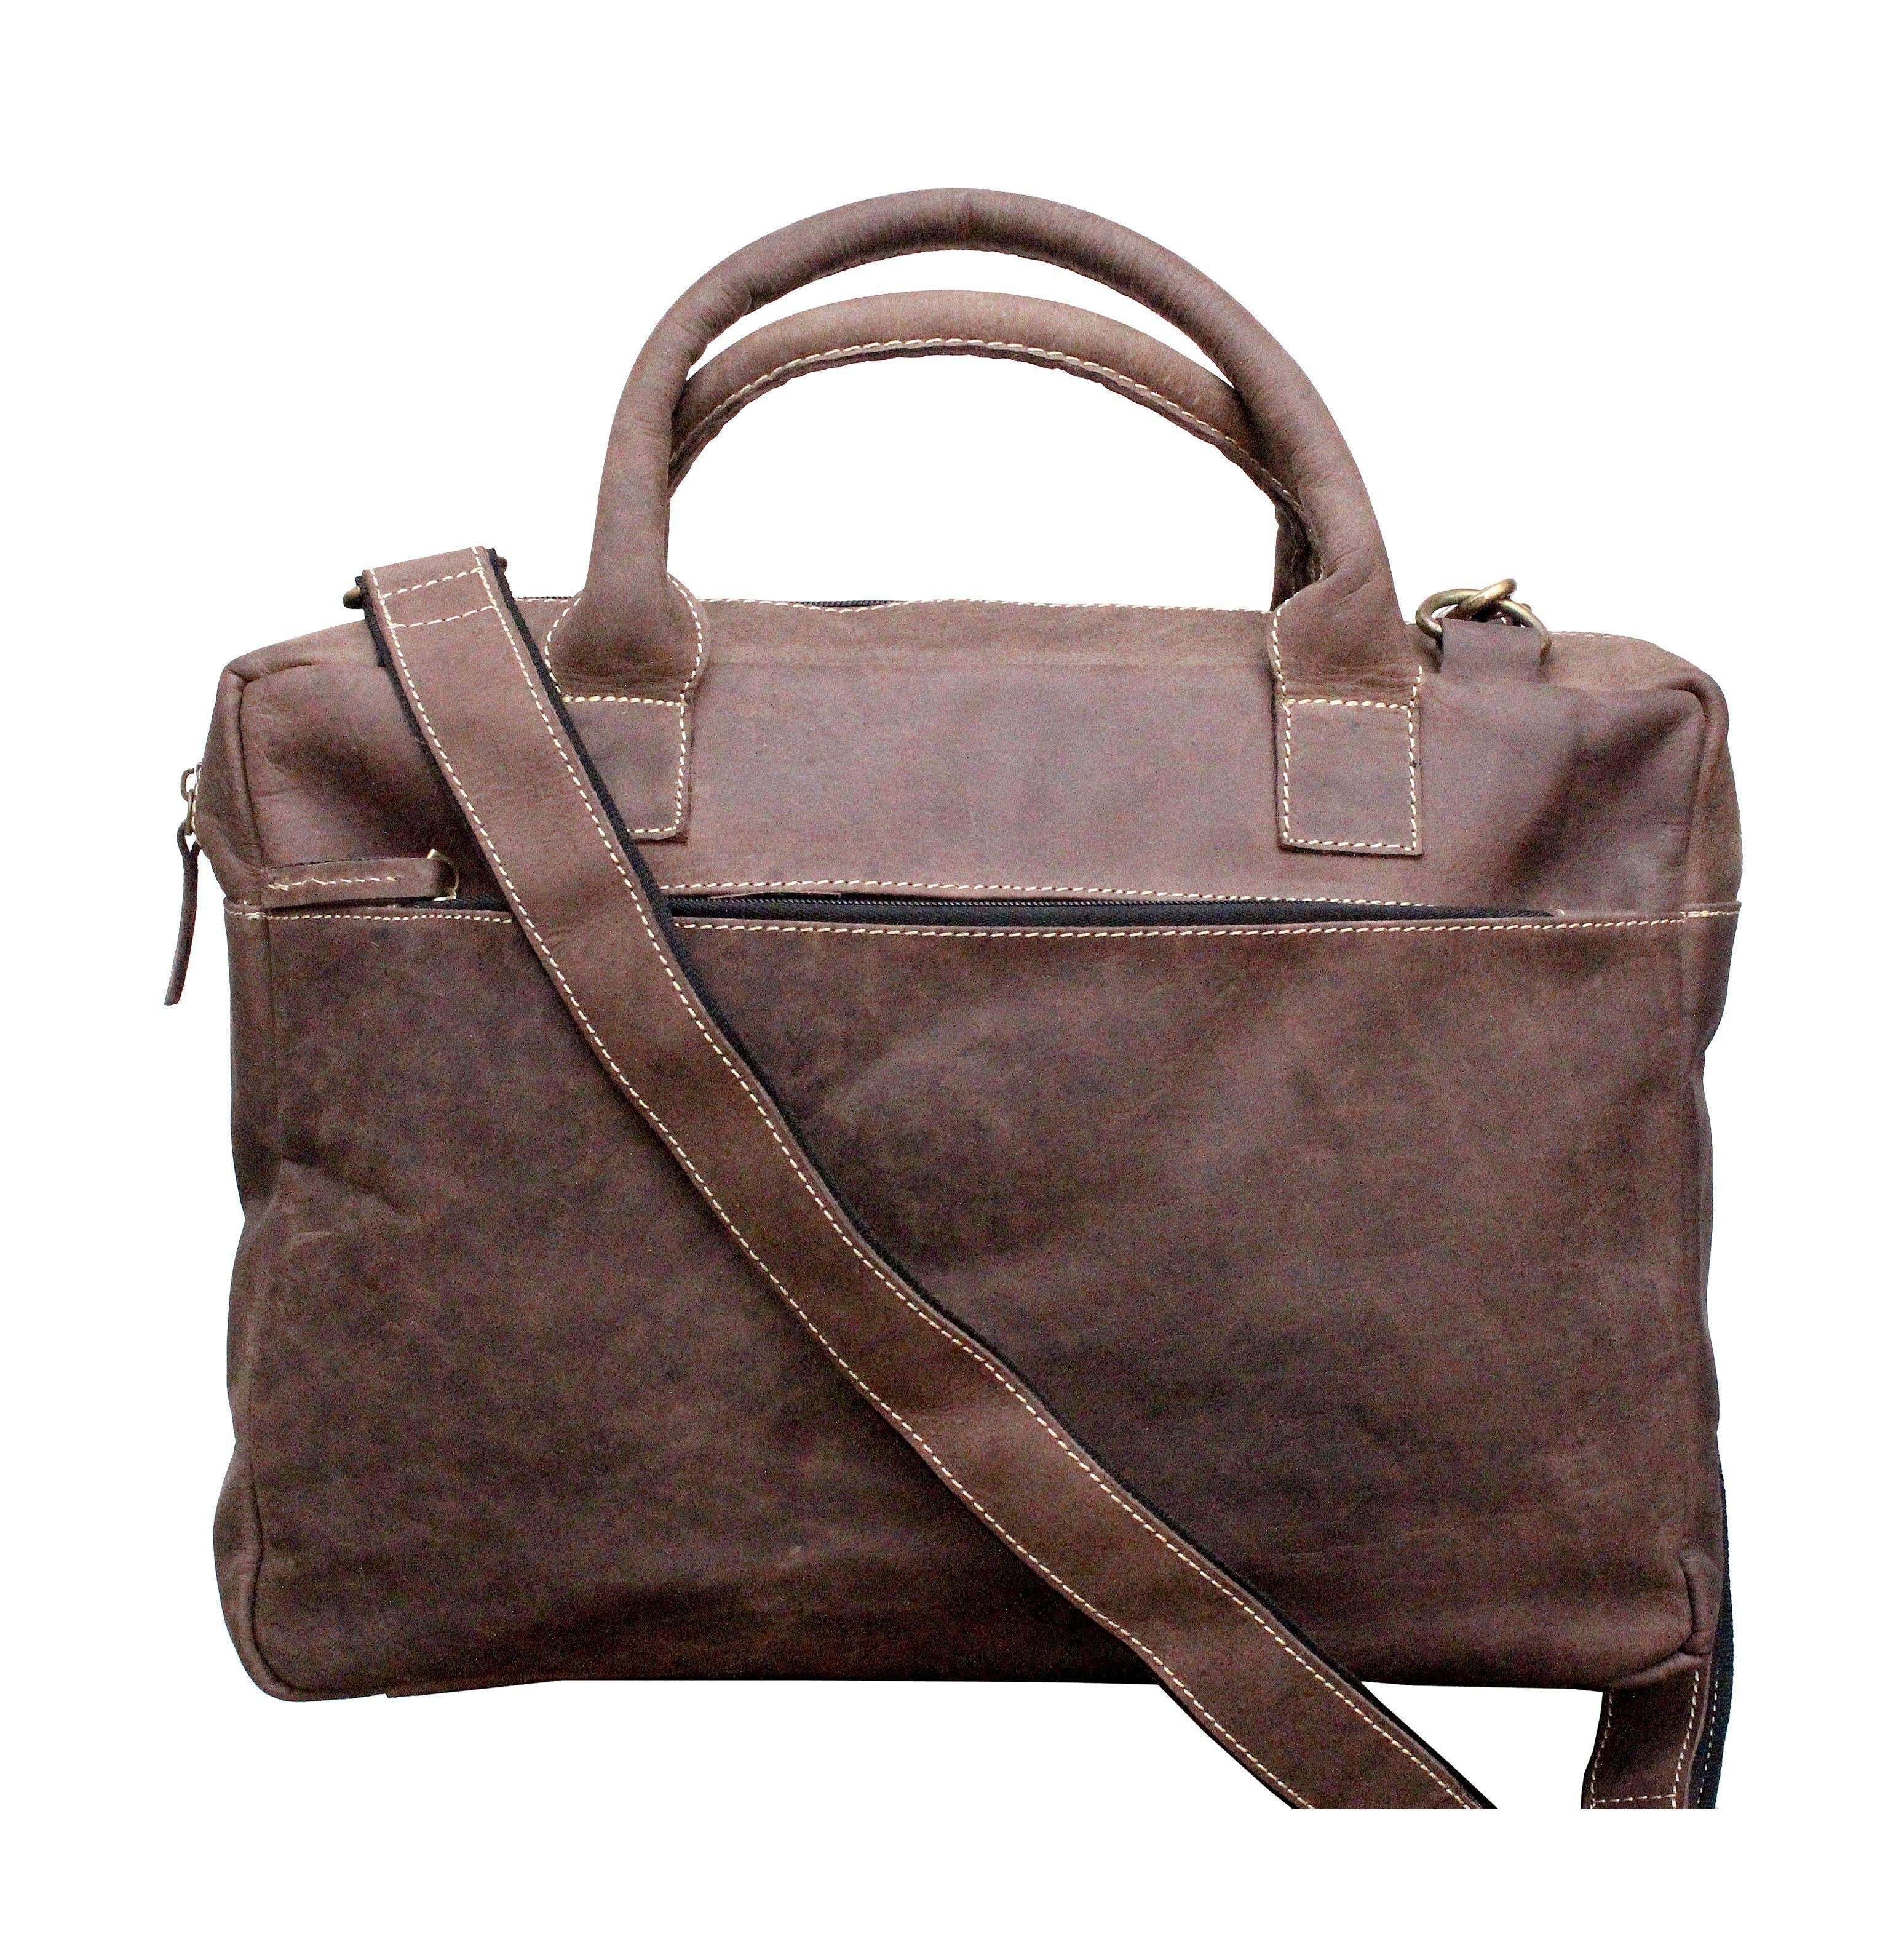 Leather - IN-INDIA Light Weight Dynamic Buffalo Leather Crafted Professional Messenger Office Bag - Fits Laptop Upto 15.6 Inches